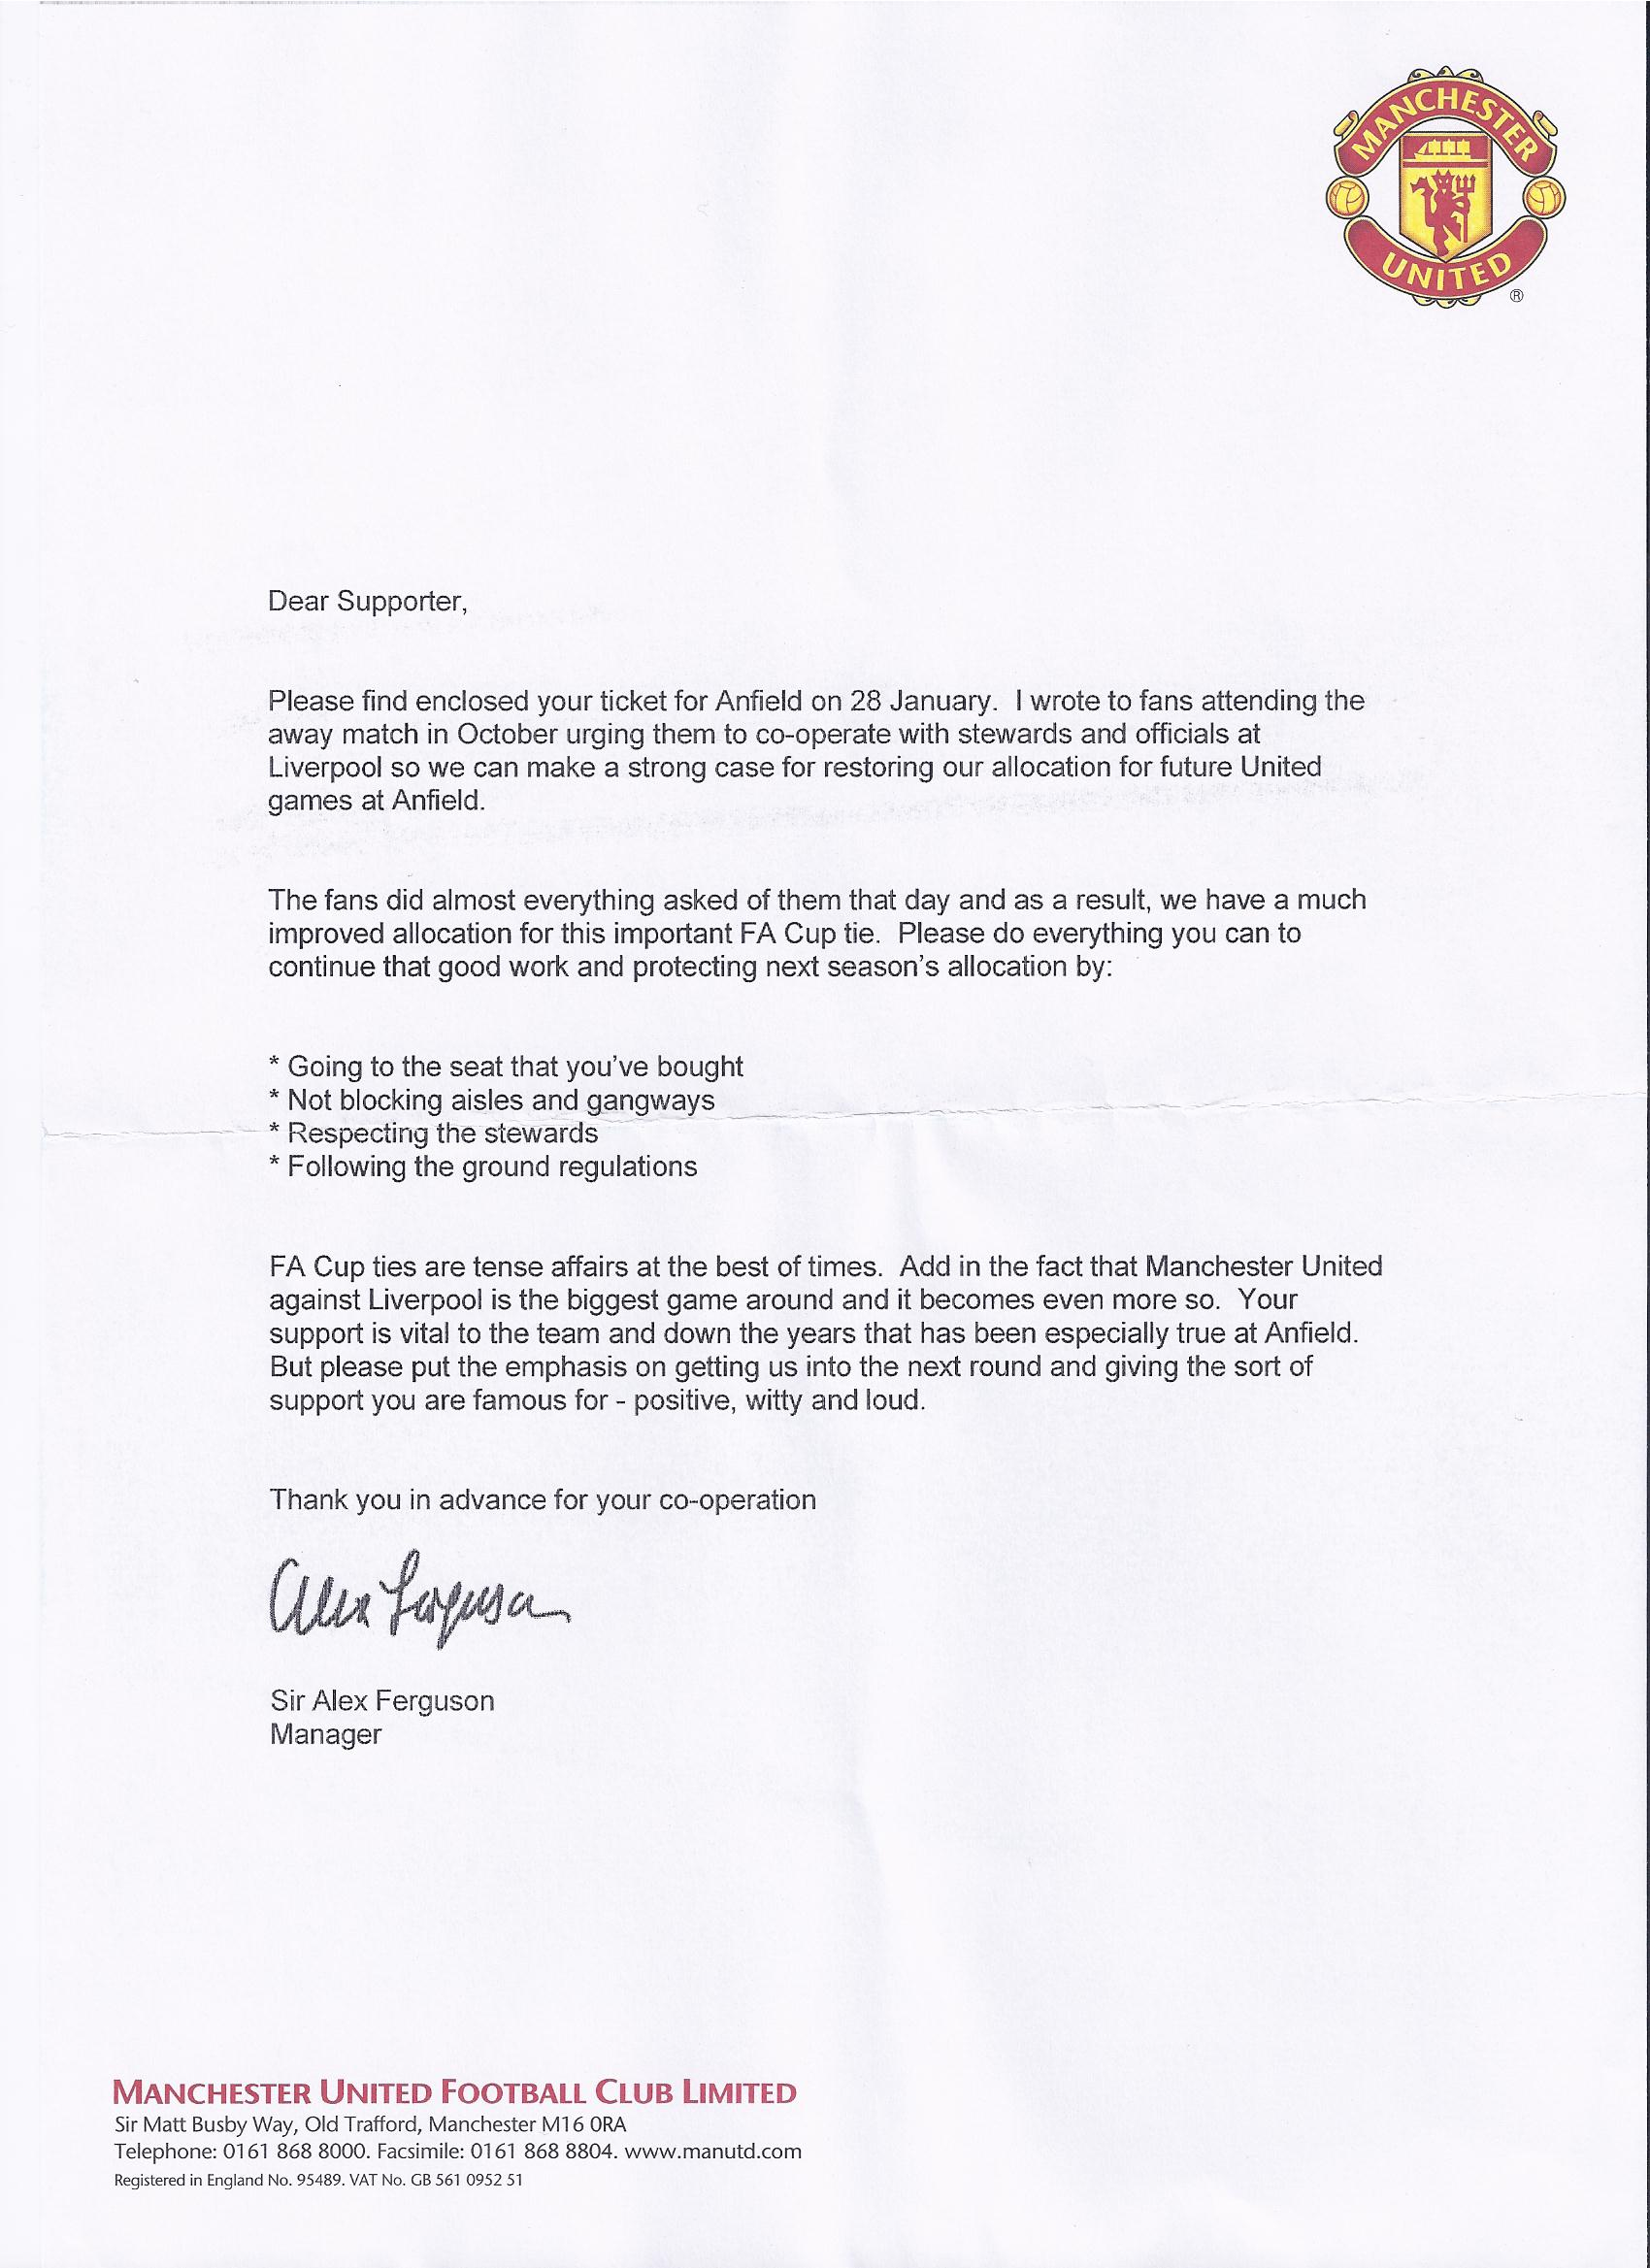 PICTURE: Ferguson's Letter To Fans Ahead Of Anfield